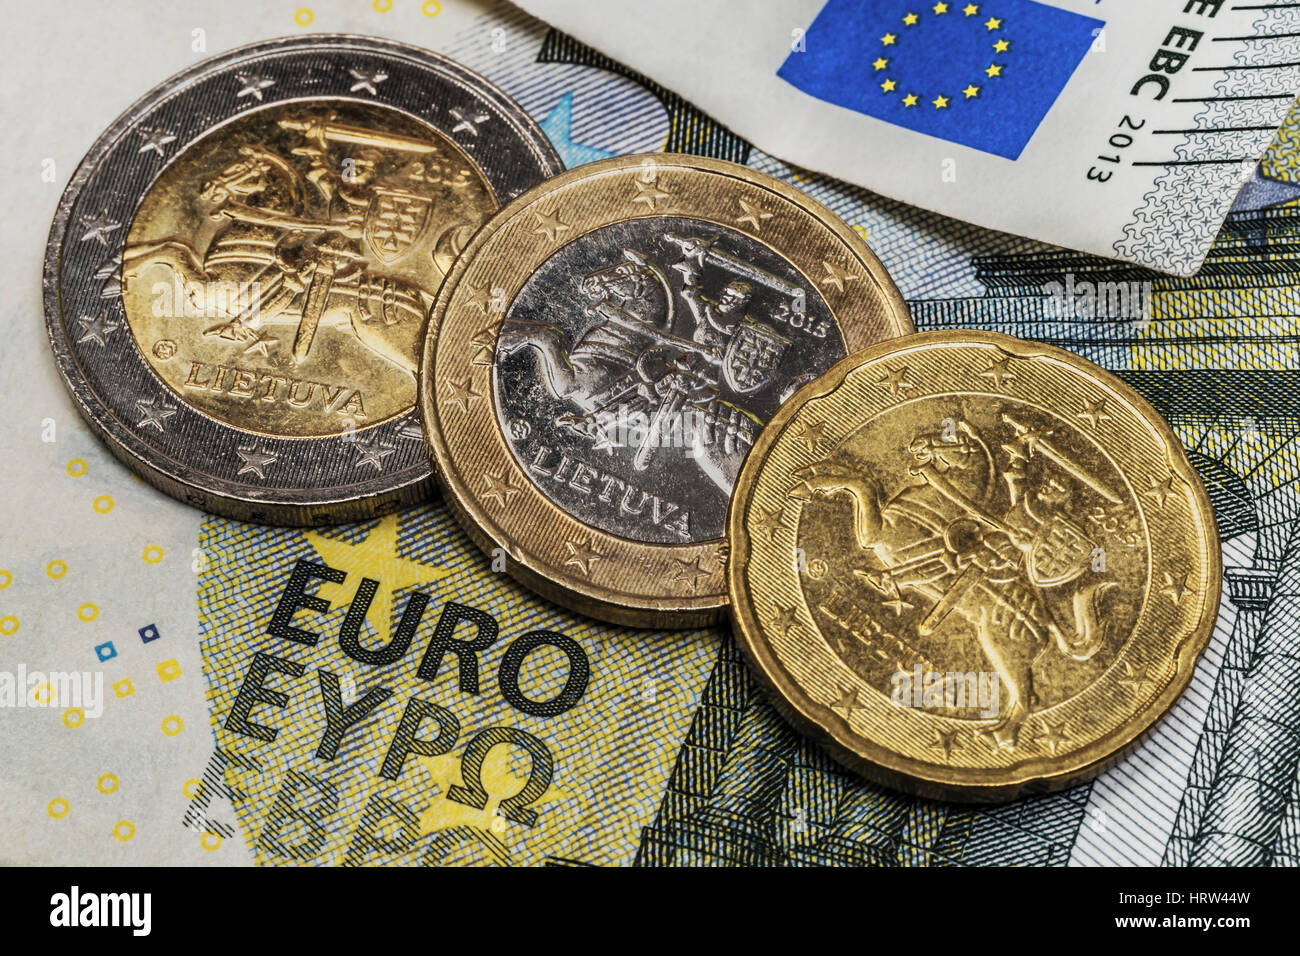 On a 5 euro banknote are three euro coins of the Baltic State Lithuania - Stock Image